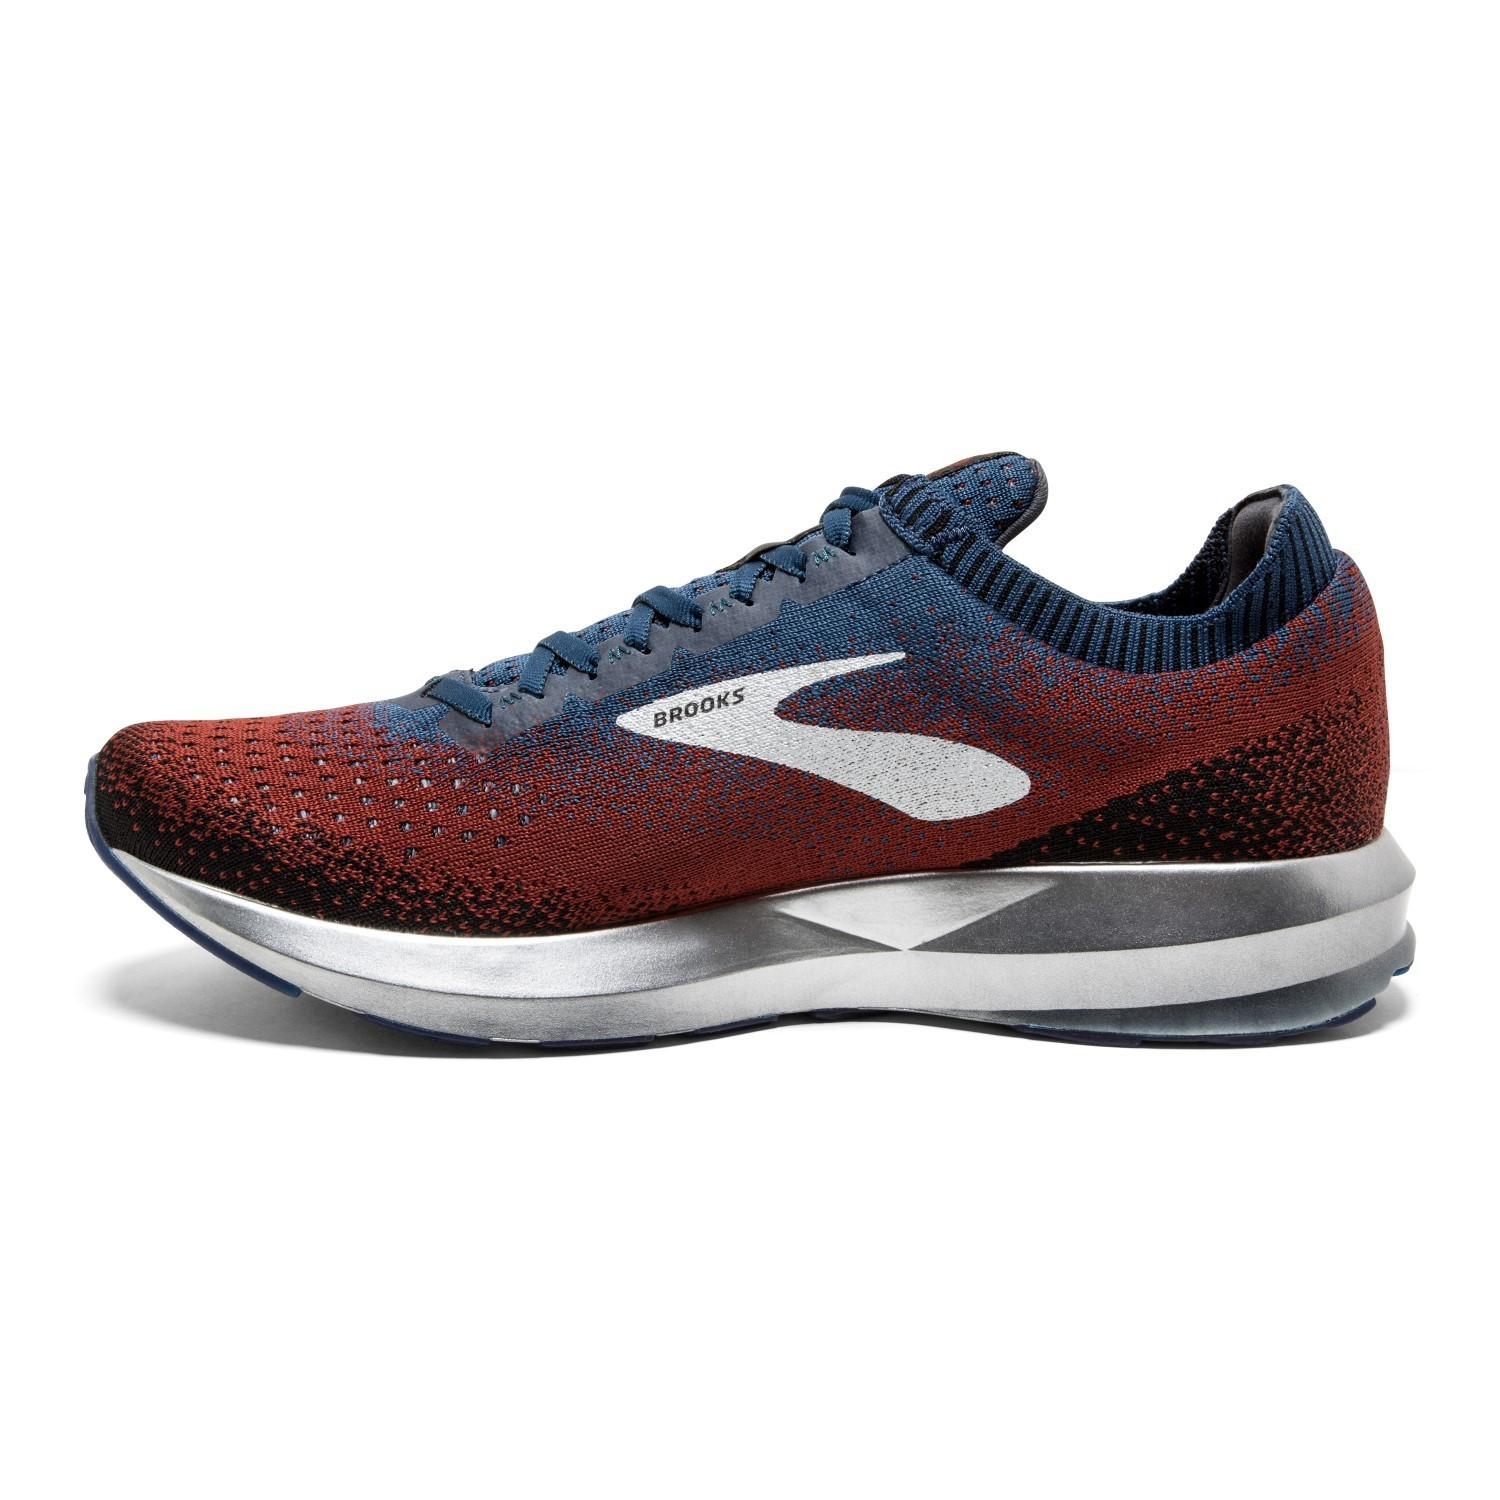 0ddd33ef3c2f Brooks Levitate 2 - Mens Running Shoes - Chili Navy Black